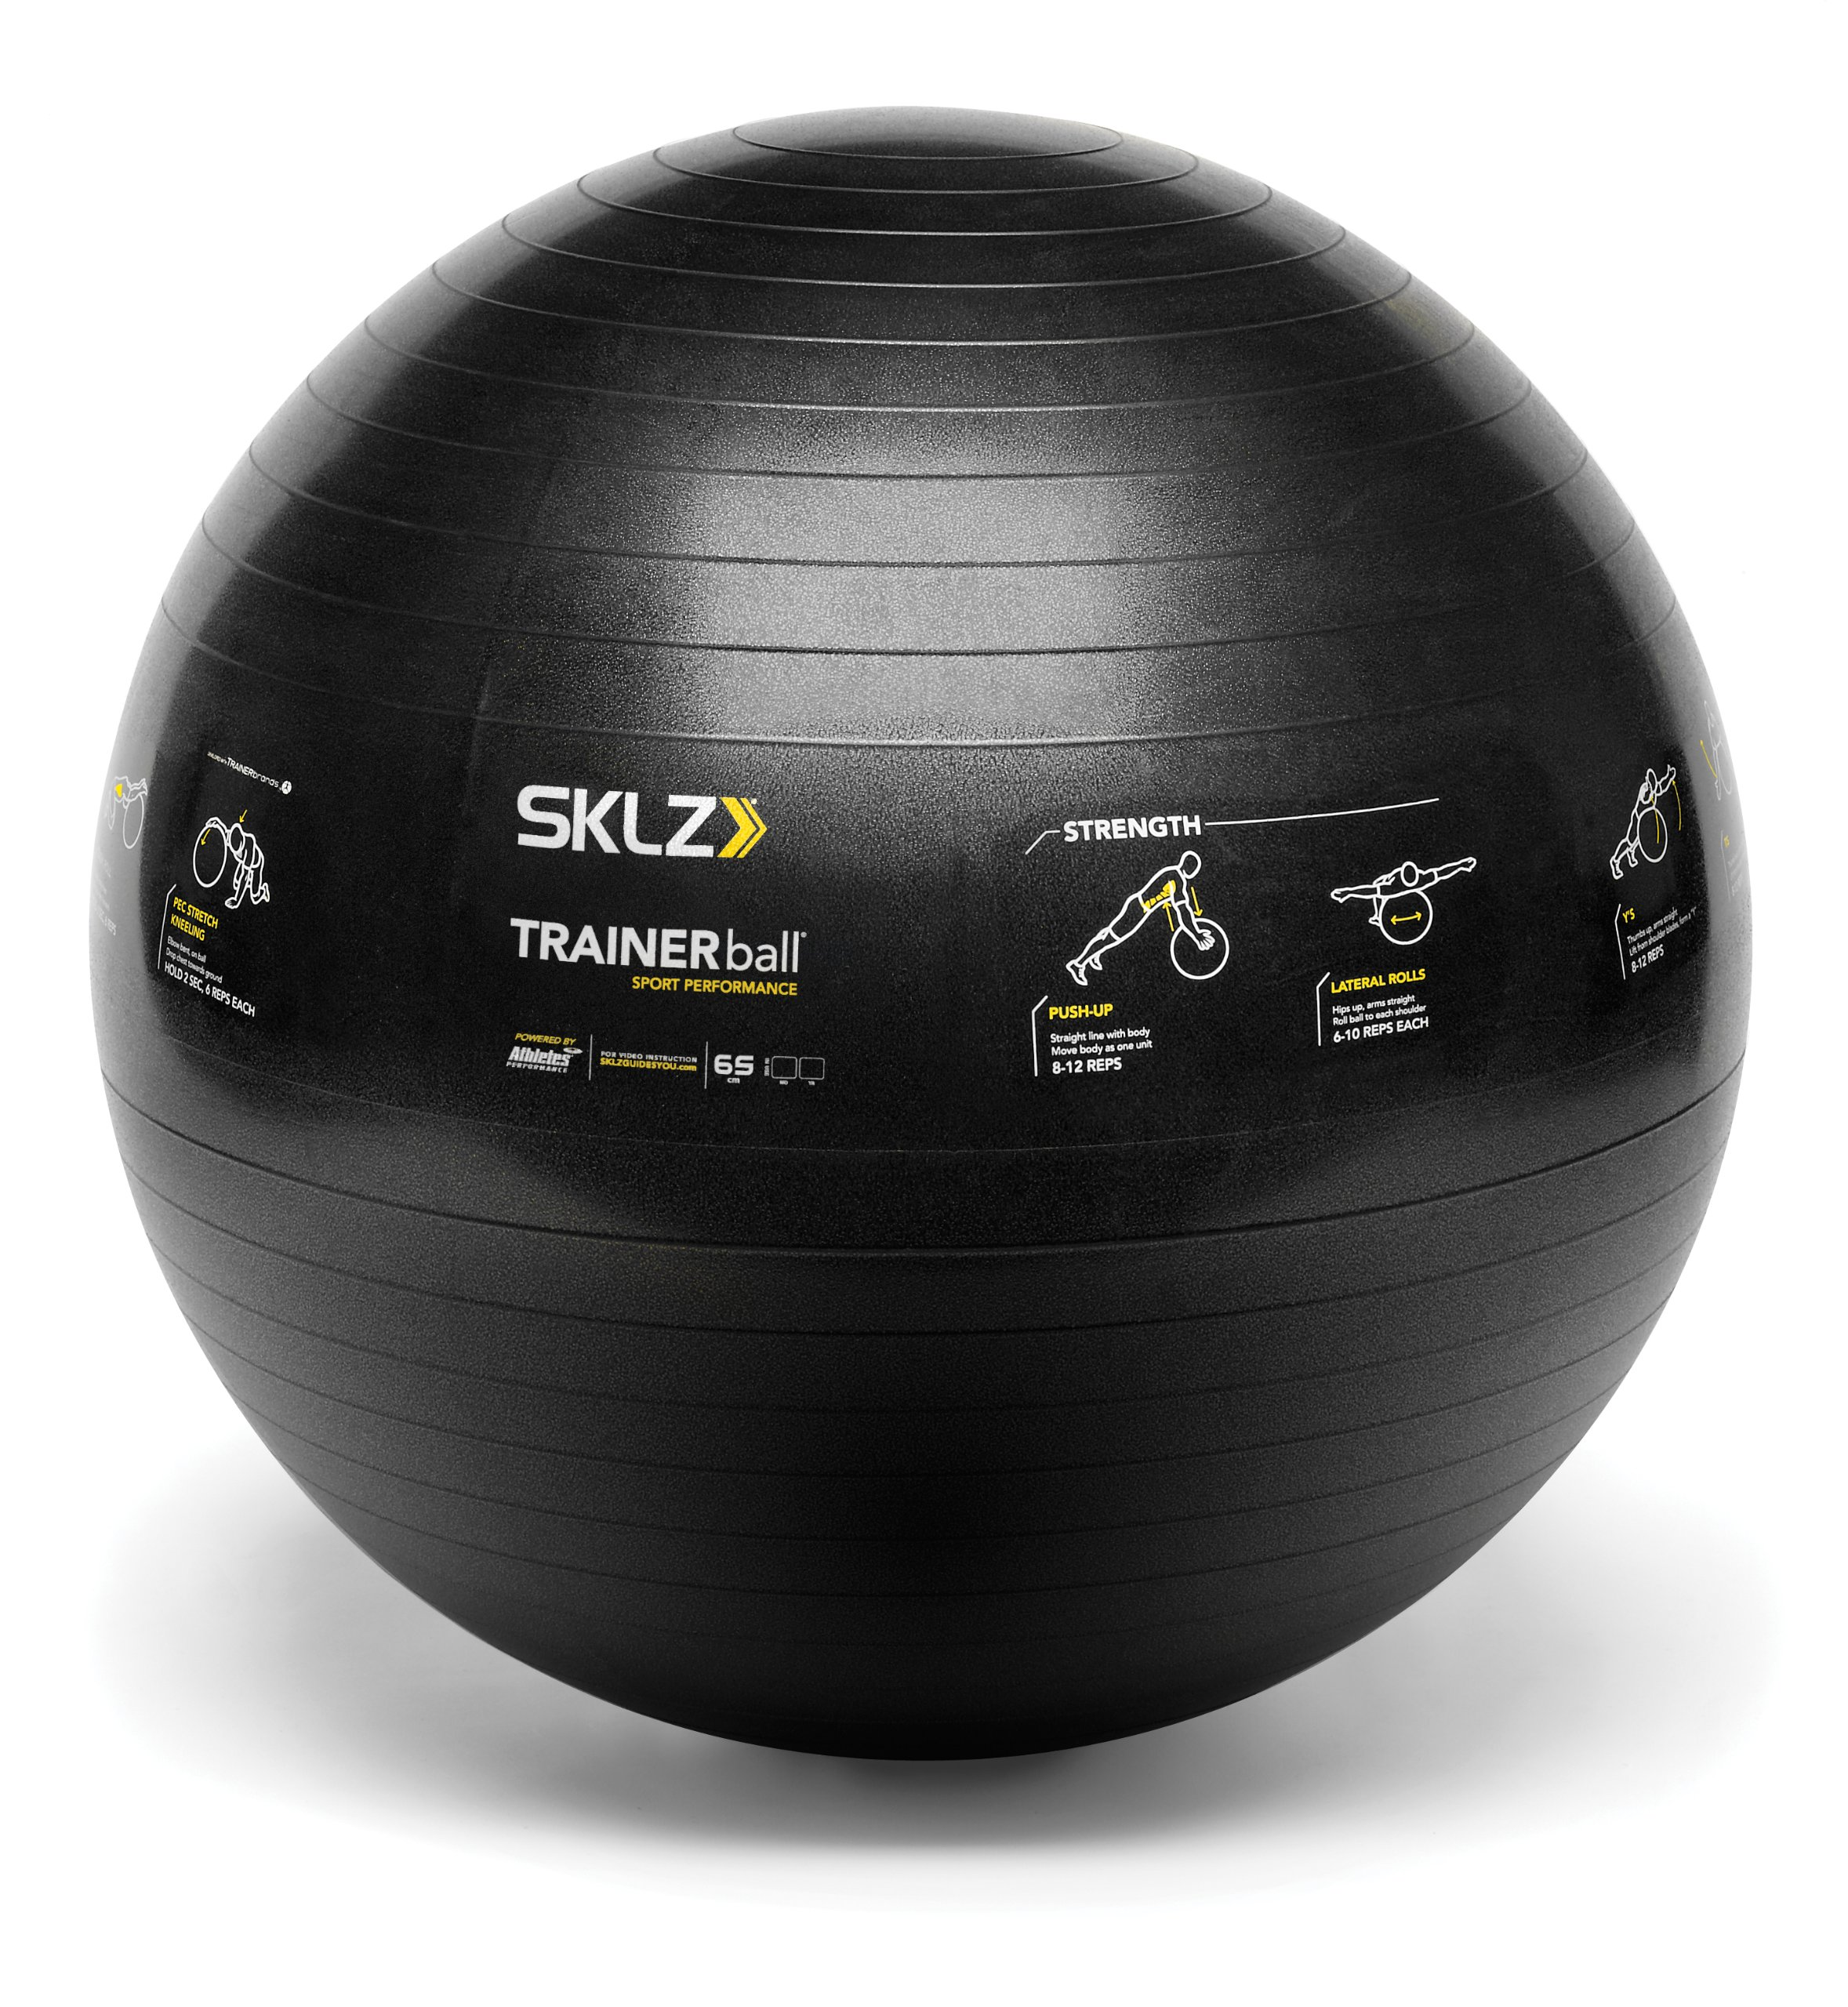 SKLZ Sport Performance Trainer Ball - Self-Guided Stability Ball